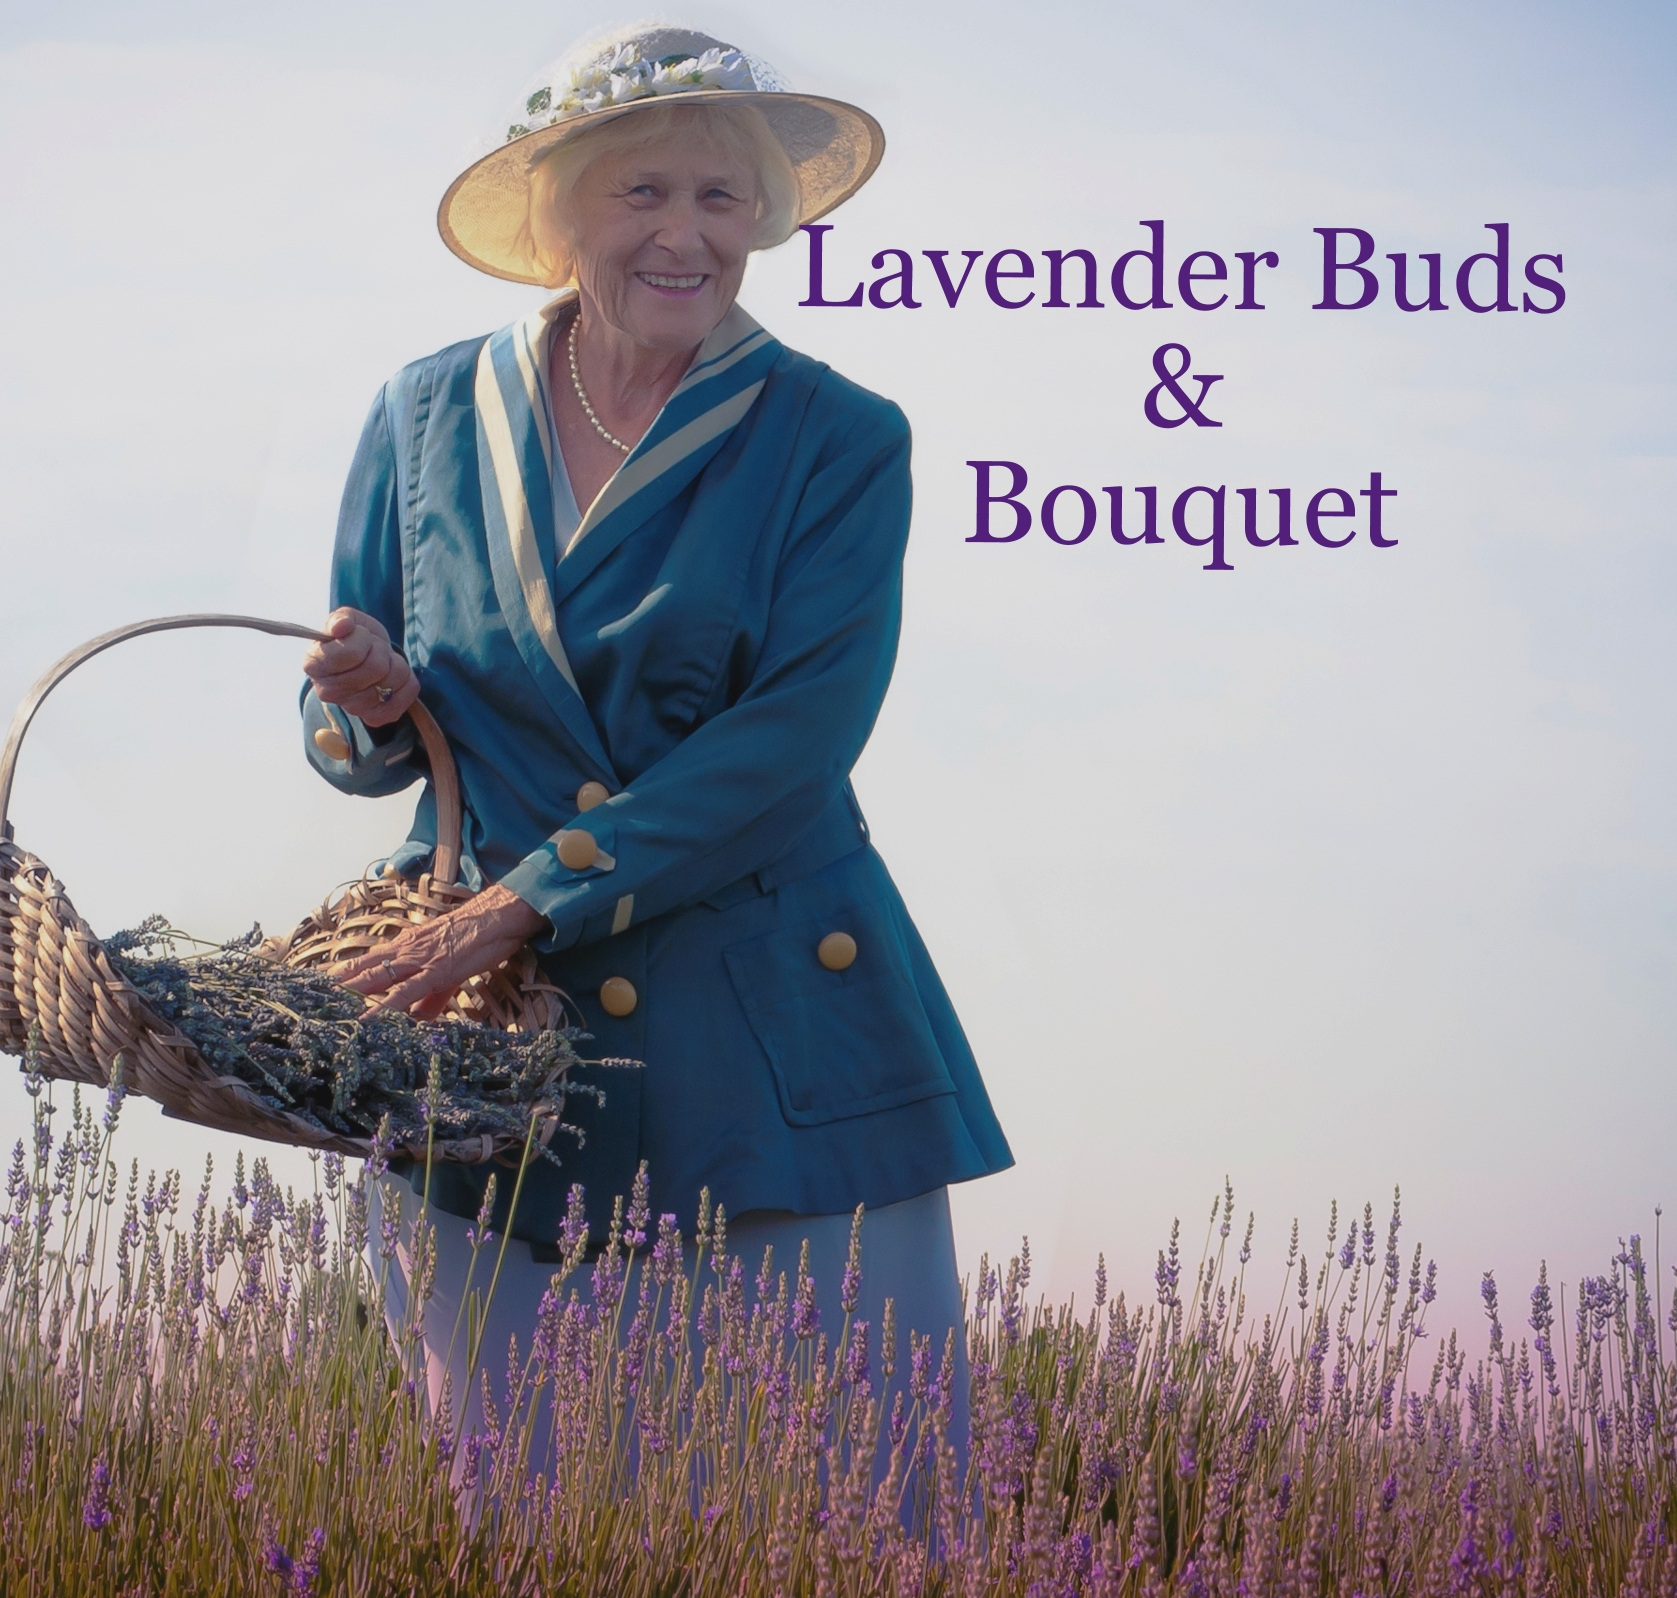 Lavender Buds and Bouquet